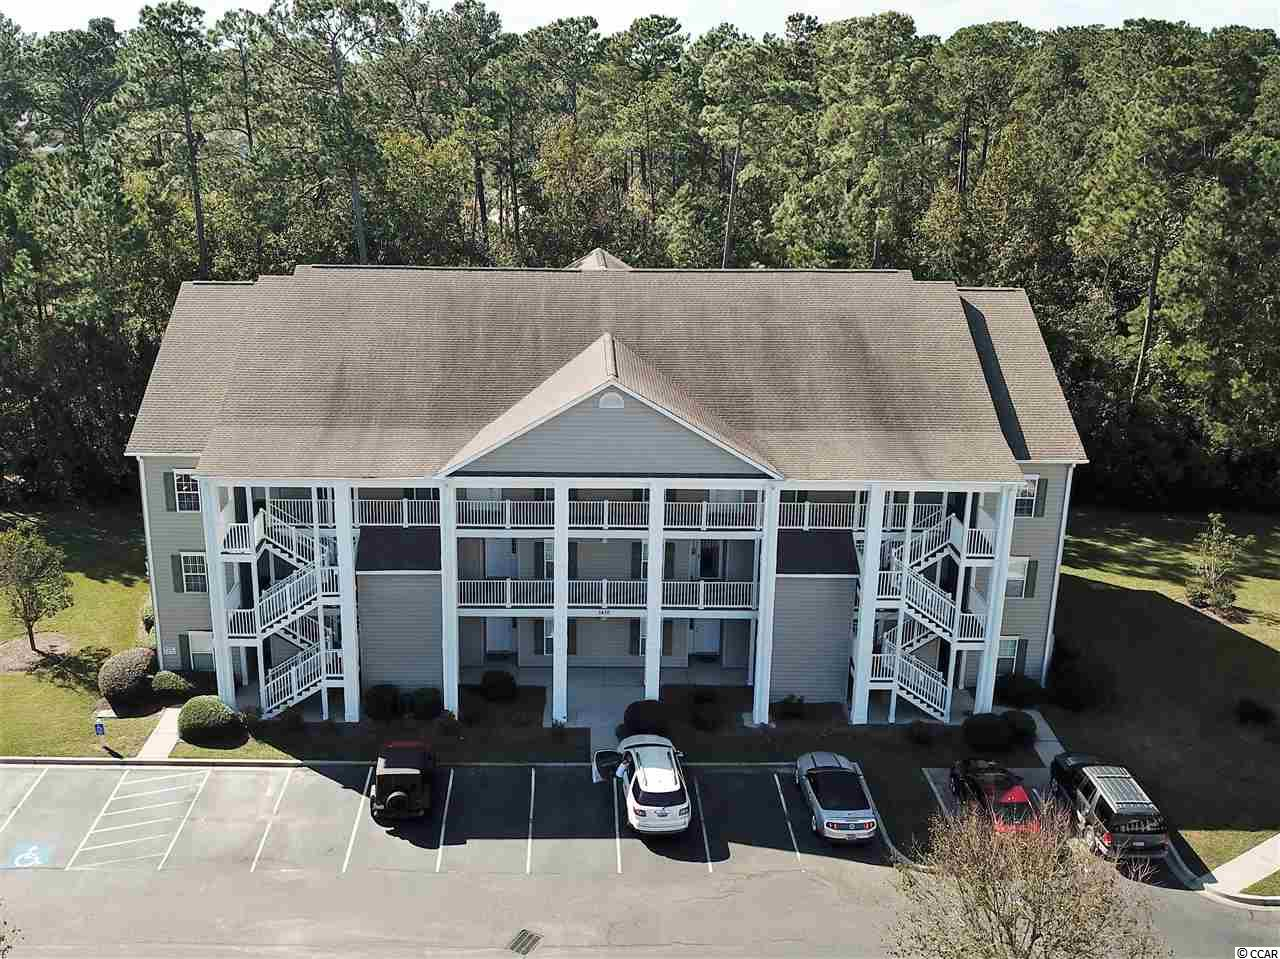 """This updated 3-bedroom, 2 bathroom condo is a 2nd floor end unit in the Marcliffe community. Located in the Blackmoor Golf Resort,you are just minutes away from the beach. What an incredible opportunity for somebody! Whether you're planning on making it a primary residence, a beautiful second home at the beach , or even an extra revenue stream! This might be the one. You enter the home into a tiled foyer, with each of the two extra bedrooms located on either side. You're view forward spills into a large, open floorplan. To the right you will find the spacious kitchen. It features extra tall, 42"""" cabinets, finished with cabinet trim. The Crown Molding that adornes the ceiling throughout the kitchen and living room, showcases the higher than normal 9' ceilings that run through-out. If the goal was to create a space with convenience and entertaining in mind, they have succeeded. With the doored pantry and a separate laundry/utility room located in the back of the kitchen, there is plenty of extra storage. Have a quick meal at the breakfast bar or use the area as a buffet for guests to enjoy. The dining area has a bump out that lets tons of natural light flood into the area helping to create that warm, cozy feeling, that every dining room should have. It also features Chair rails and wainscoting that wrap around the dining area. Next you walk into the living room. A large spacious room towards the rear of the condominium with access to the Master Bedroom and the rear screened in balcony. The private Master Bedroom is large and has a linen closet and a separate Walk-in closet, again plenty of storage.The back screened in balcony is perfect for the morning coffee or an evening libation. This condo is conveniently located to shopping, the Murrels Inlet Marshwalk, wonderful dining, and the Huntington Beach State Park. Call to schedule a showing today! Welcome to the Neighborhood!"""